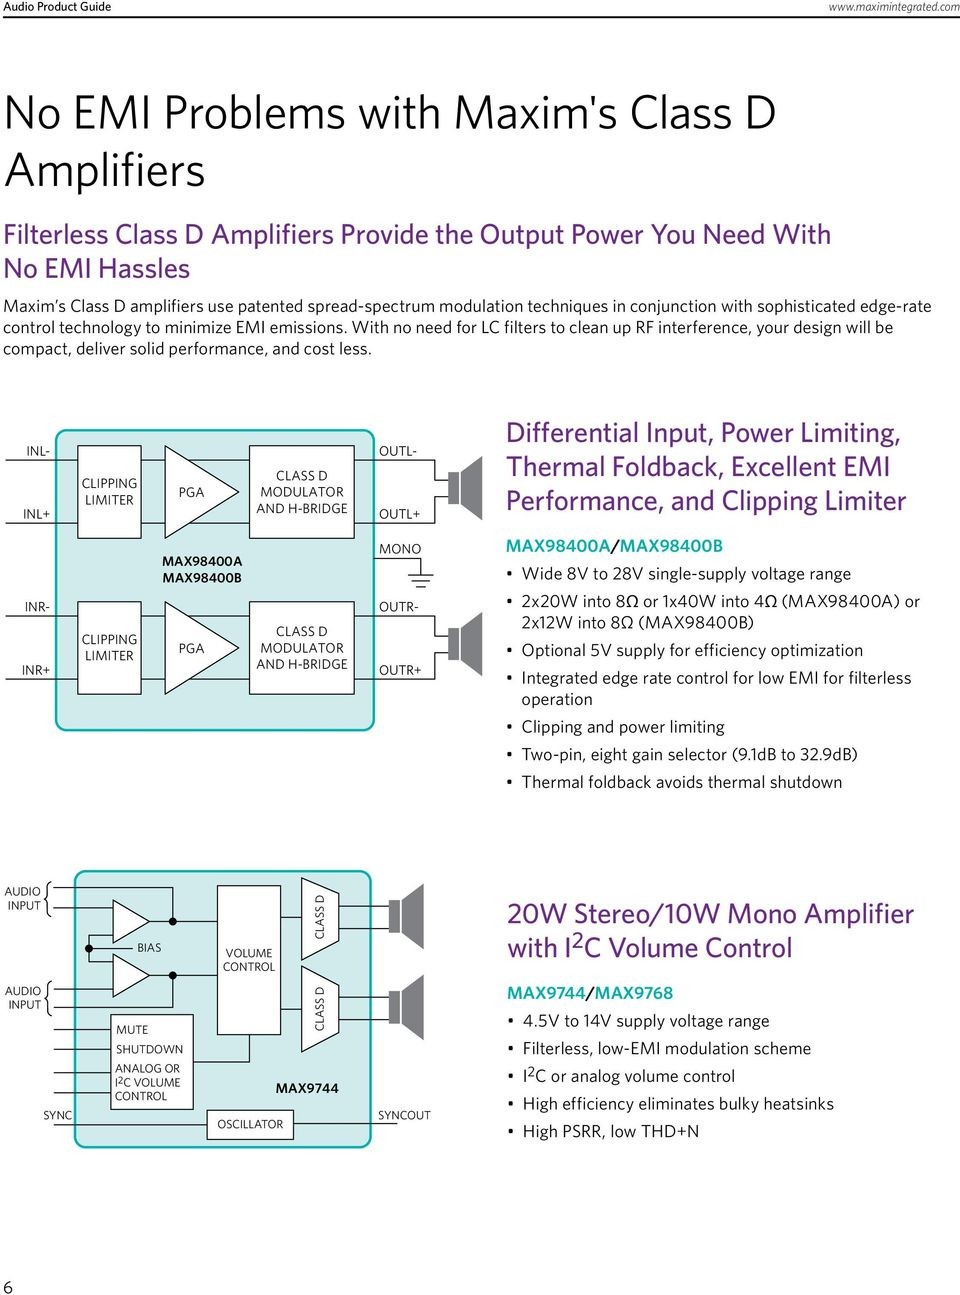 13 Th Edition Audio Product Guide Pdf 20w Stereo Amplifier Based Lm1876 Amplifiercircuit Circuit With No Need For Lc Filters To Clean Up Rf Interference Your Design Will Be